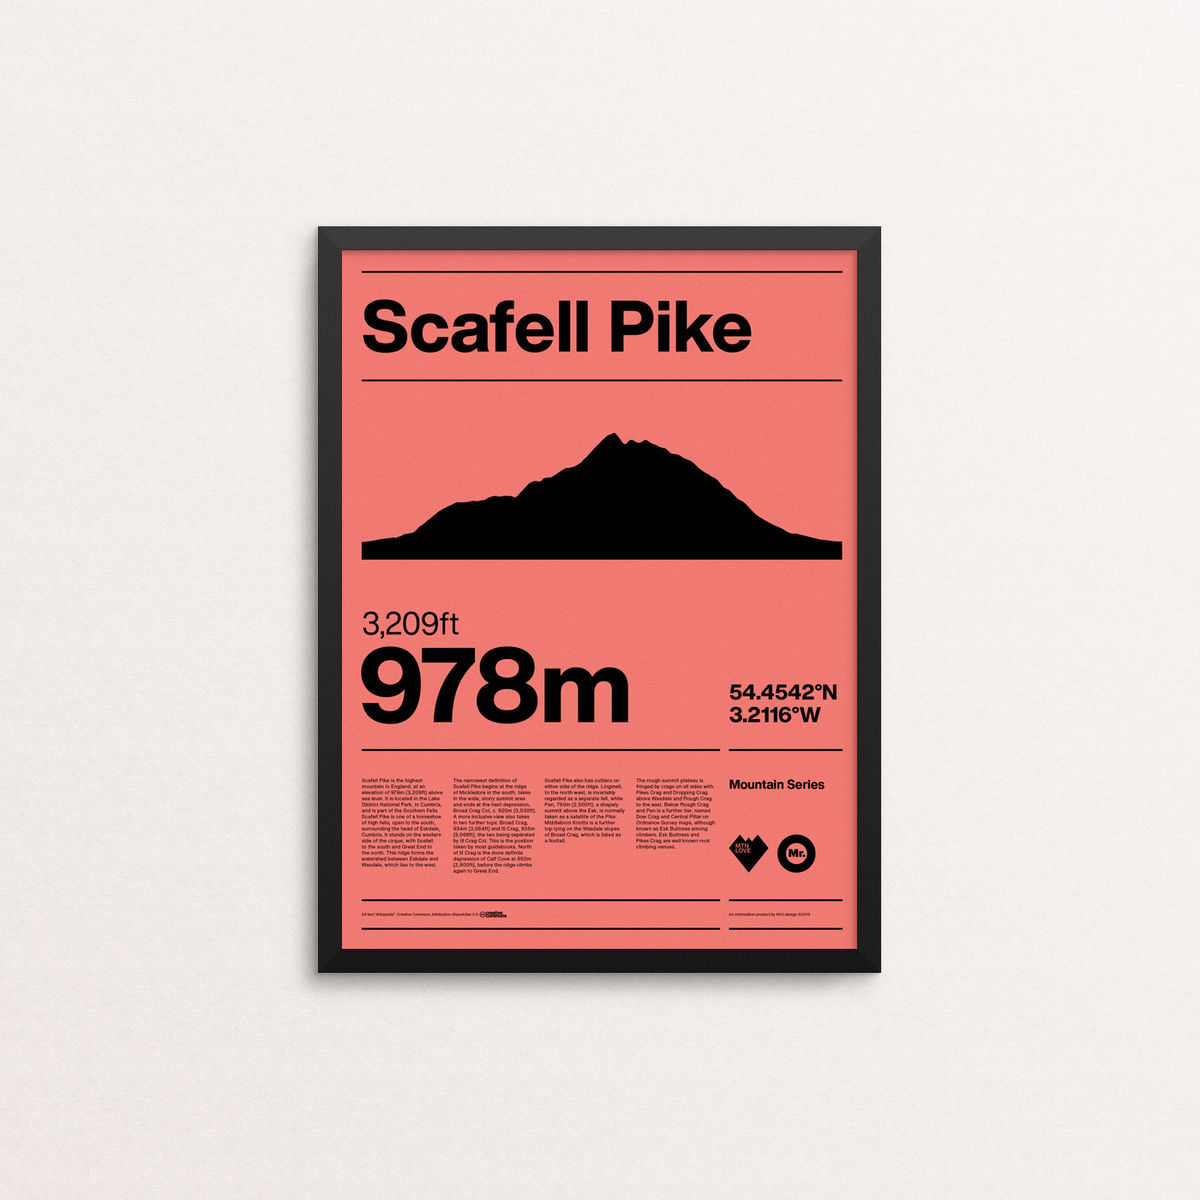 MTN Love - Scafel Pike - product image